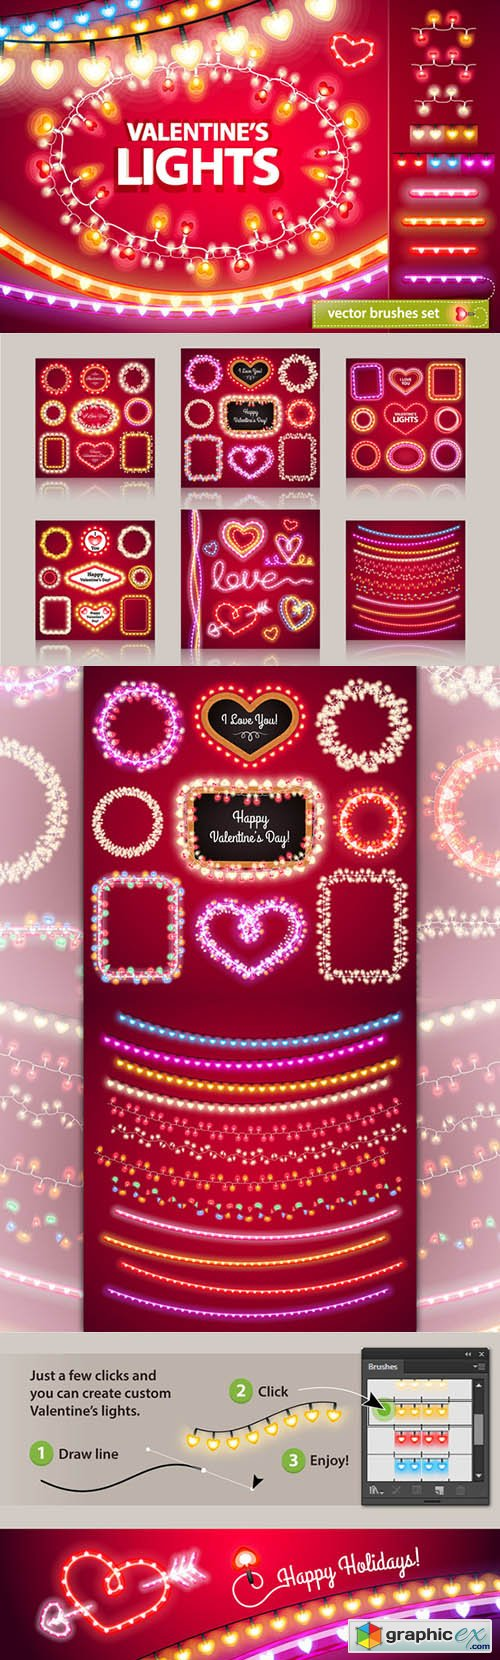 Valentine's Lights Decorations Set